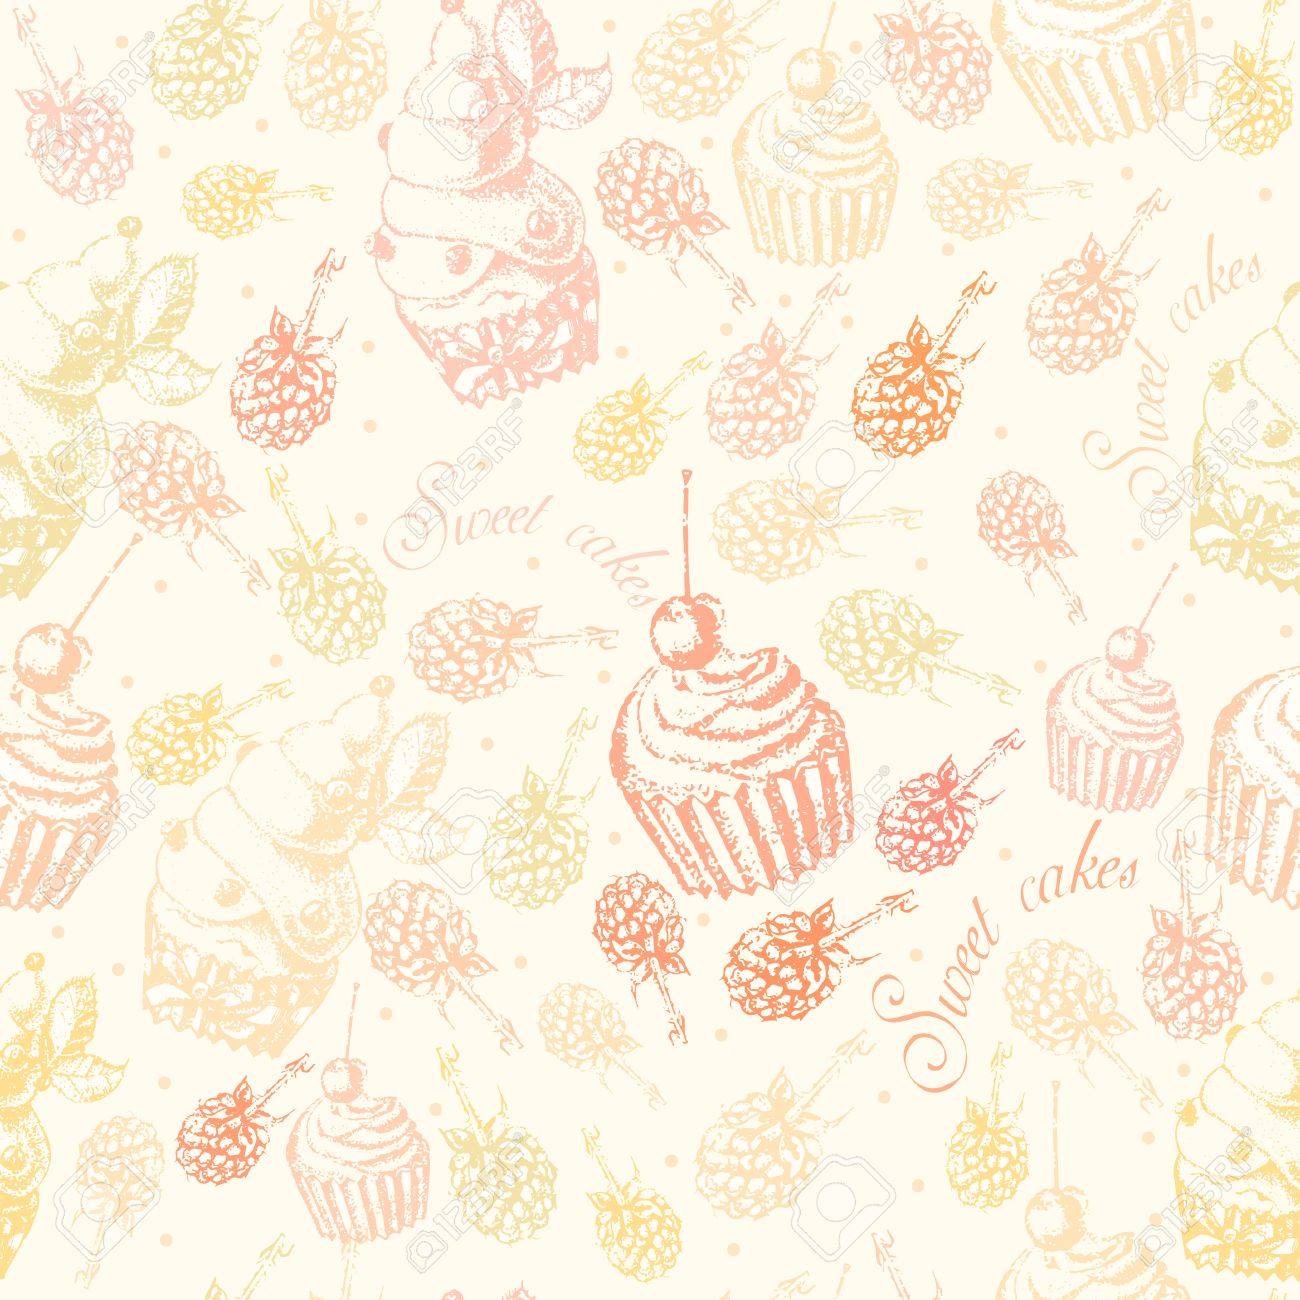 Cute Seamless Pattern Sweet Cake On A Light Background Stock Vector 33260006